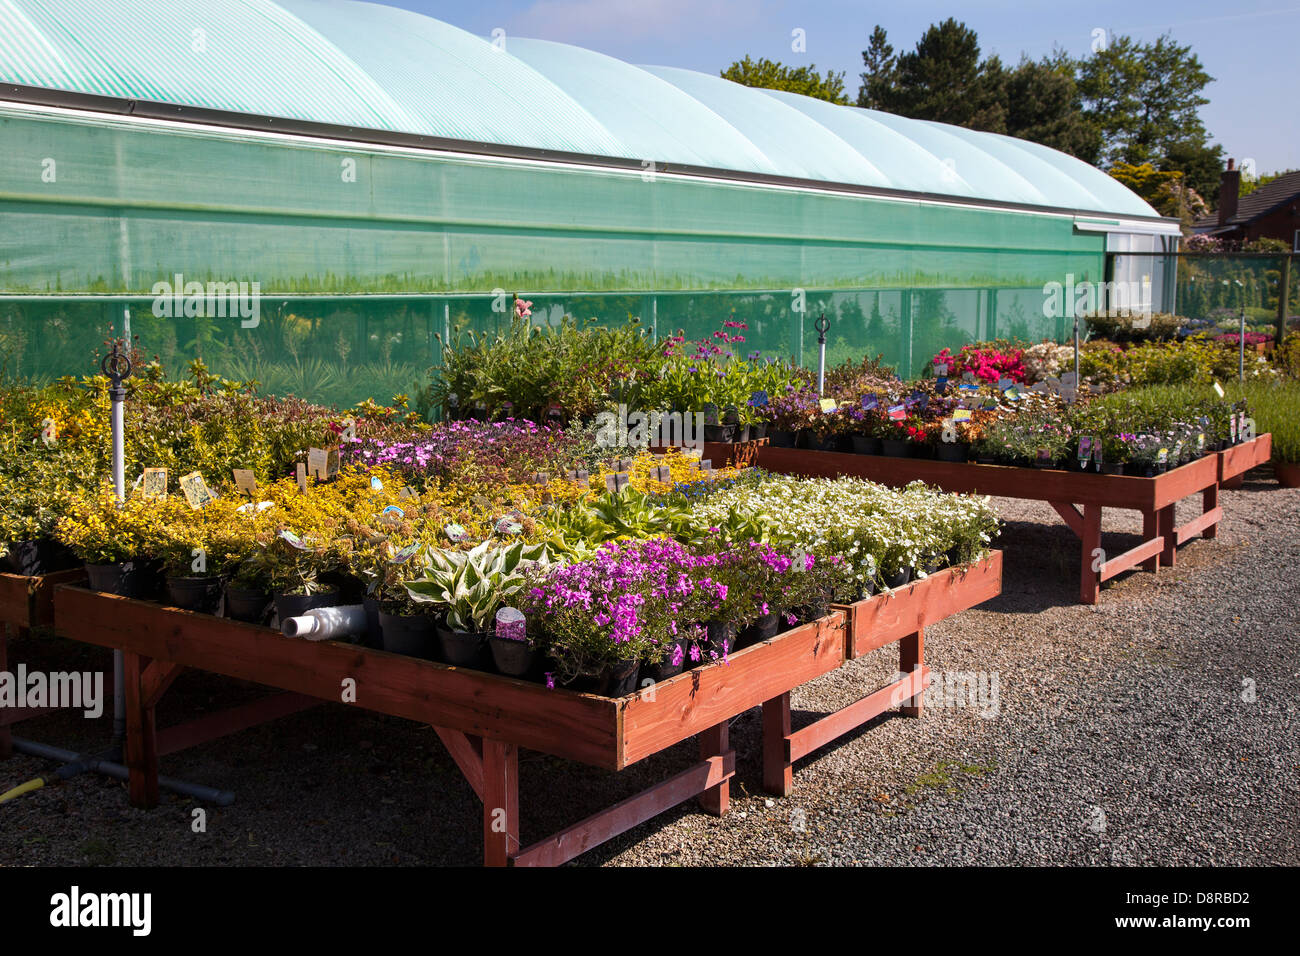 Greenhouses and nursery bedding plants for sale at J.A. Jones Nursery in Southport, Merseyside, UK - Stock Image